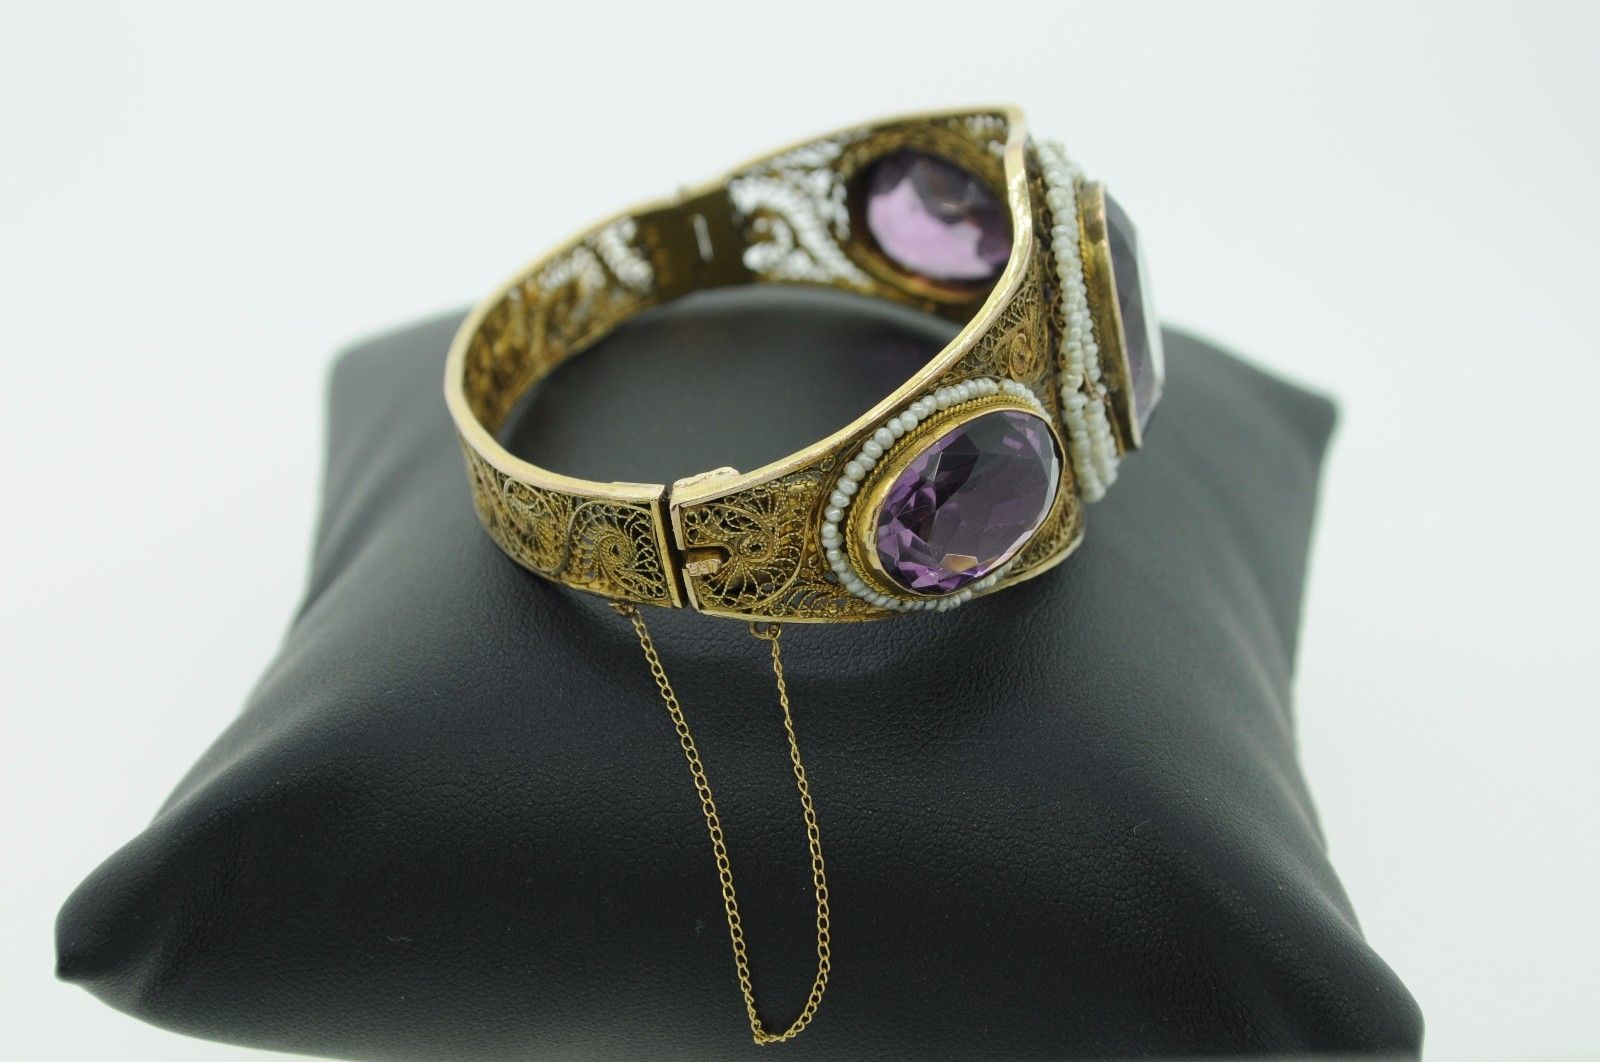 Antique (ca. 1900) 14K Yellow Gold Amethyst and Seed Pearl Bangle Bracelet